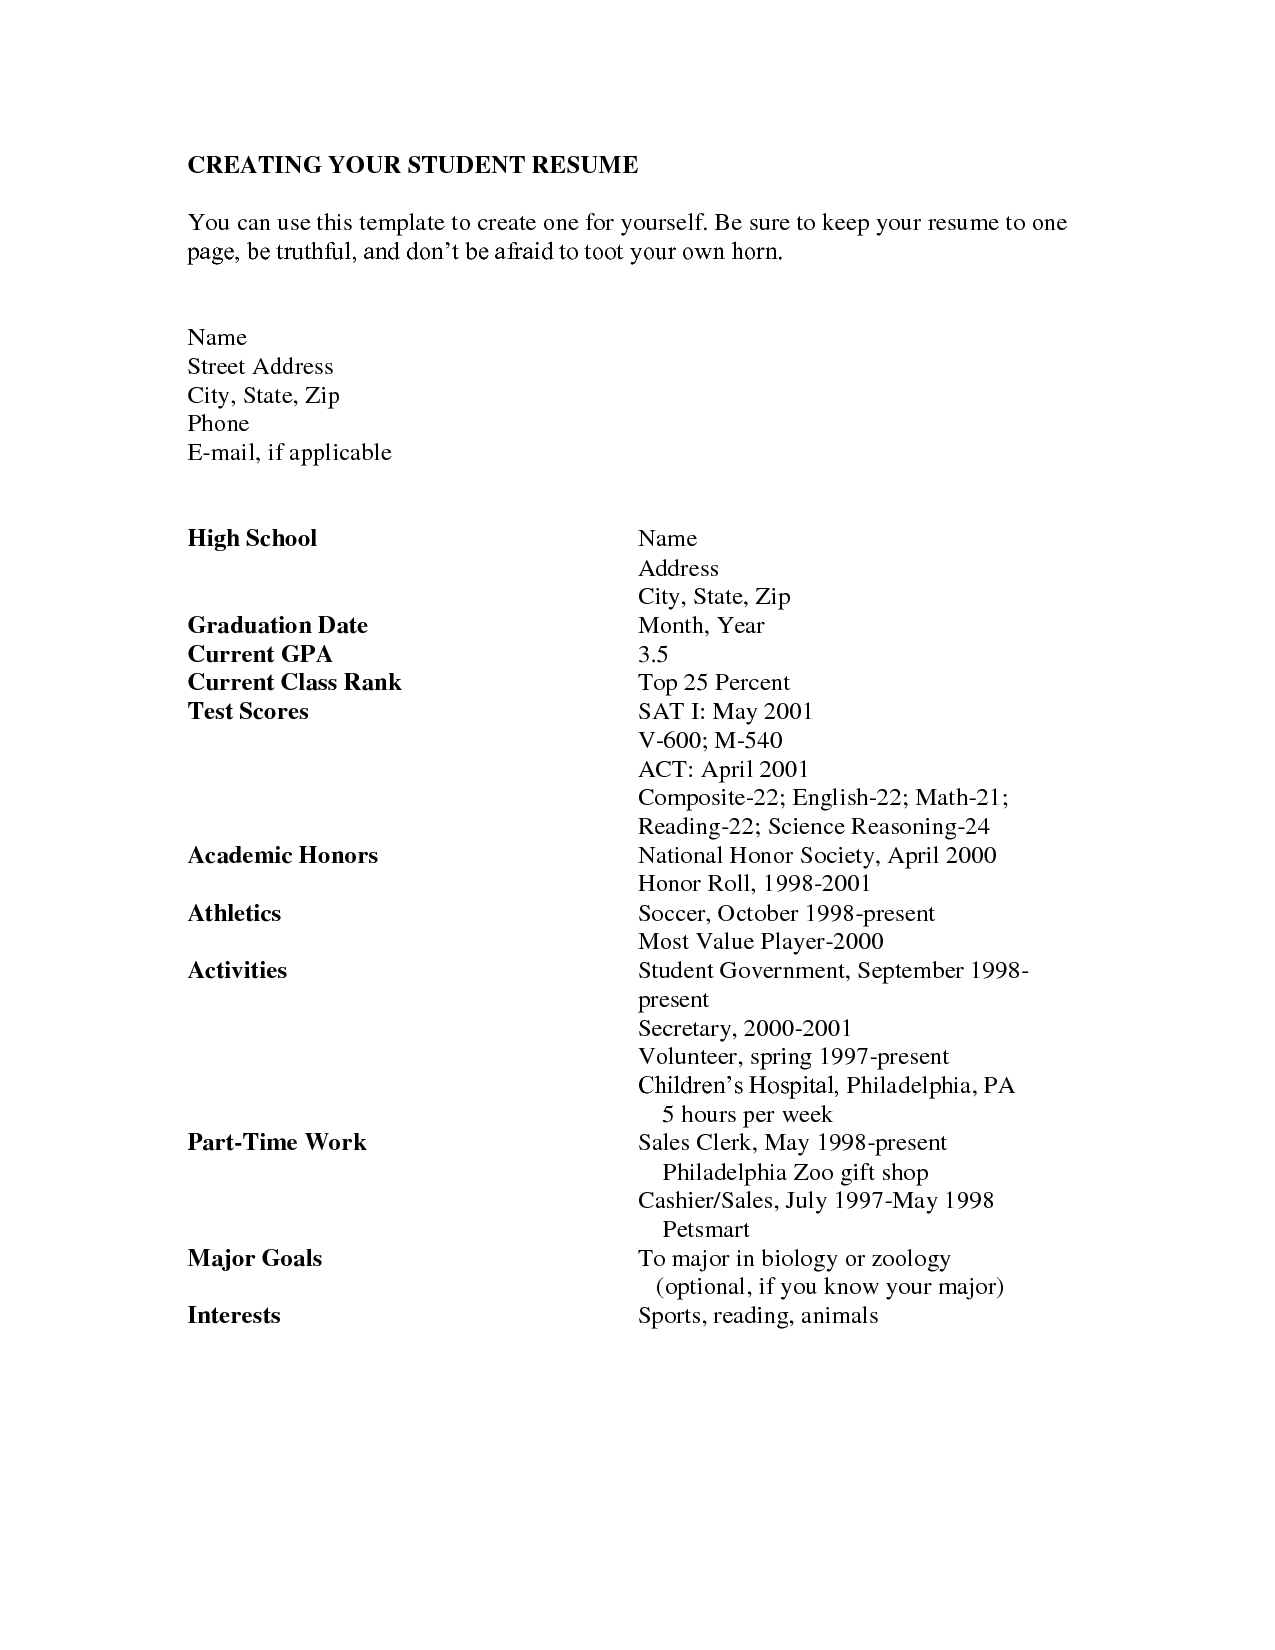 Resume For A Highschool Student High School Resume Academic Resume Builder Resume Templates  Http